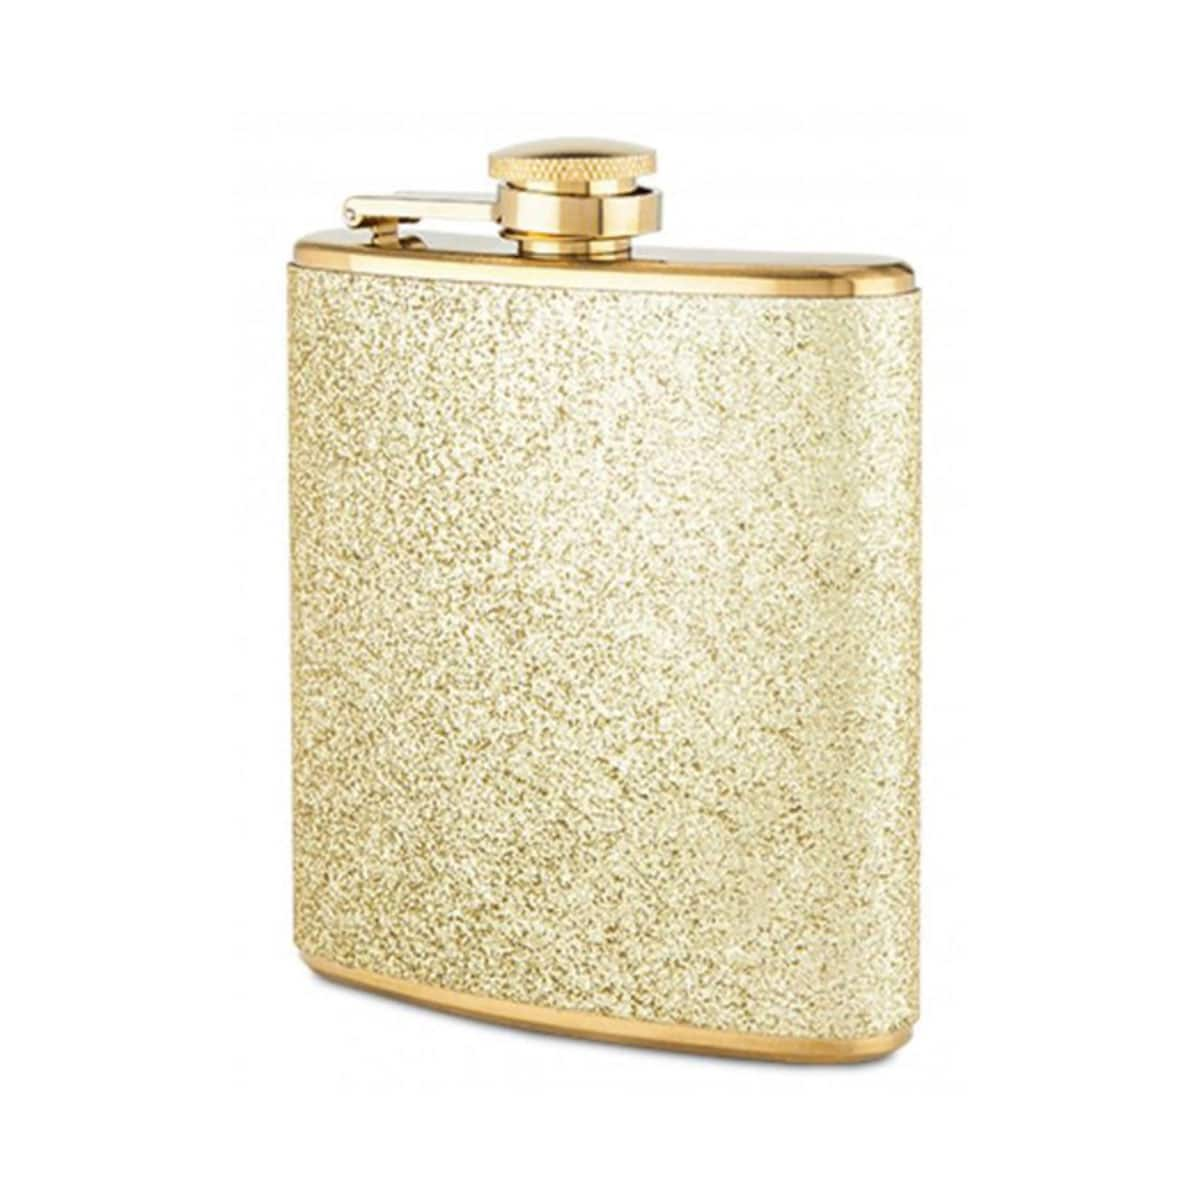 11 Classy Flasks for Drinking Anywhere: gallery image 12